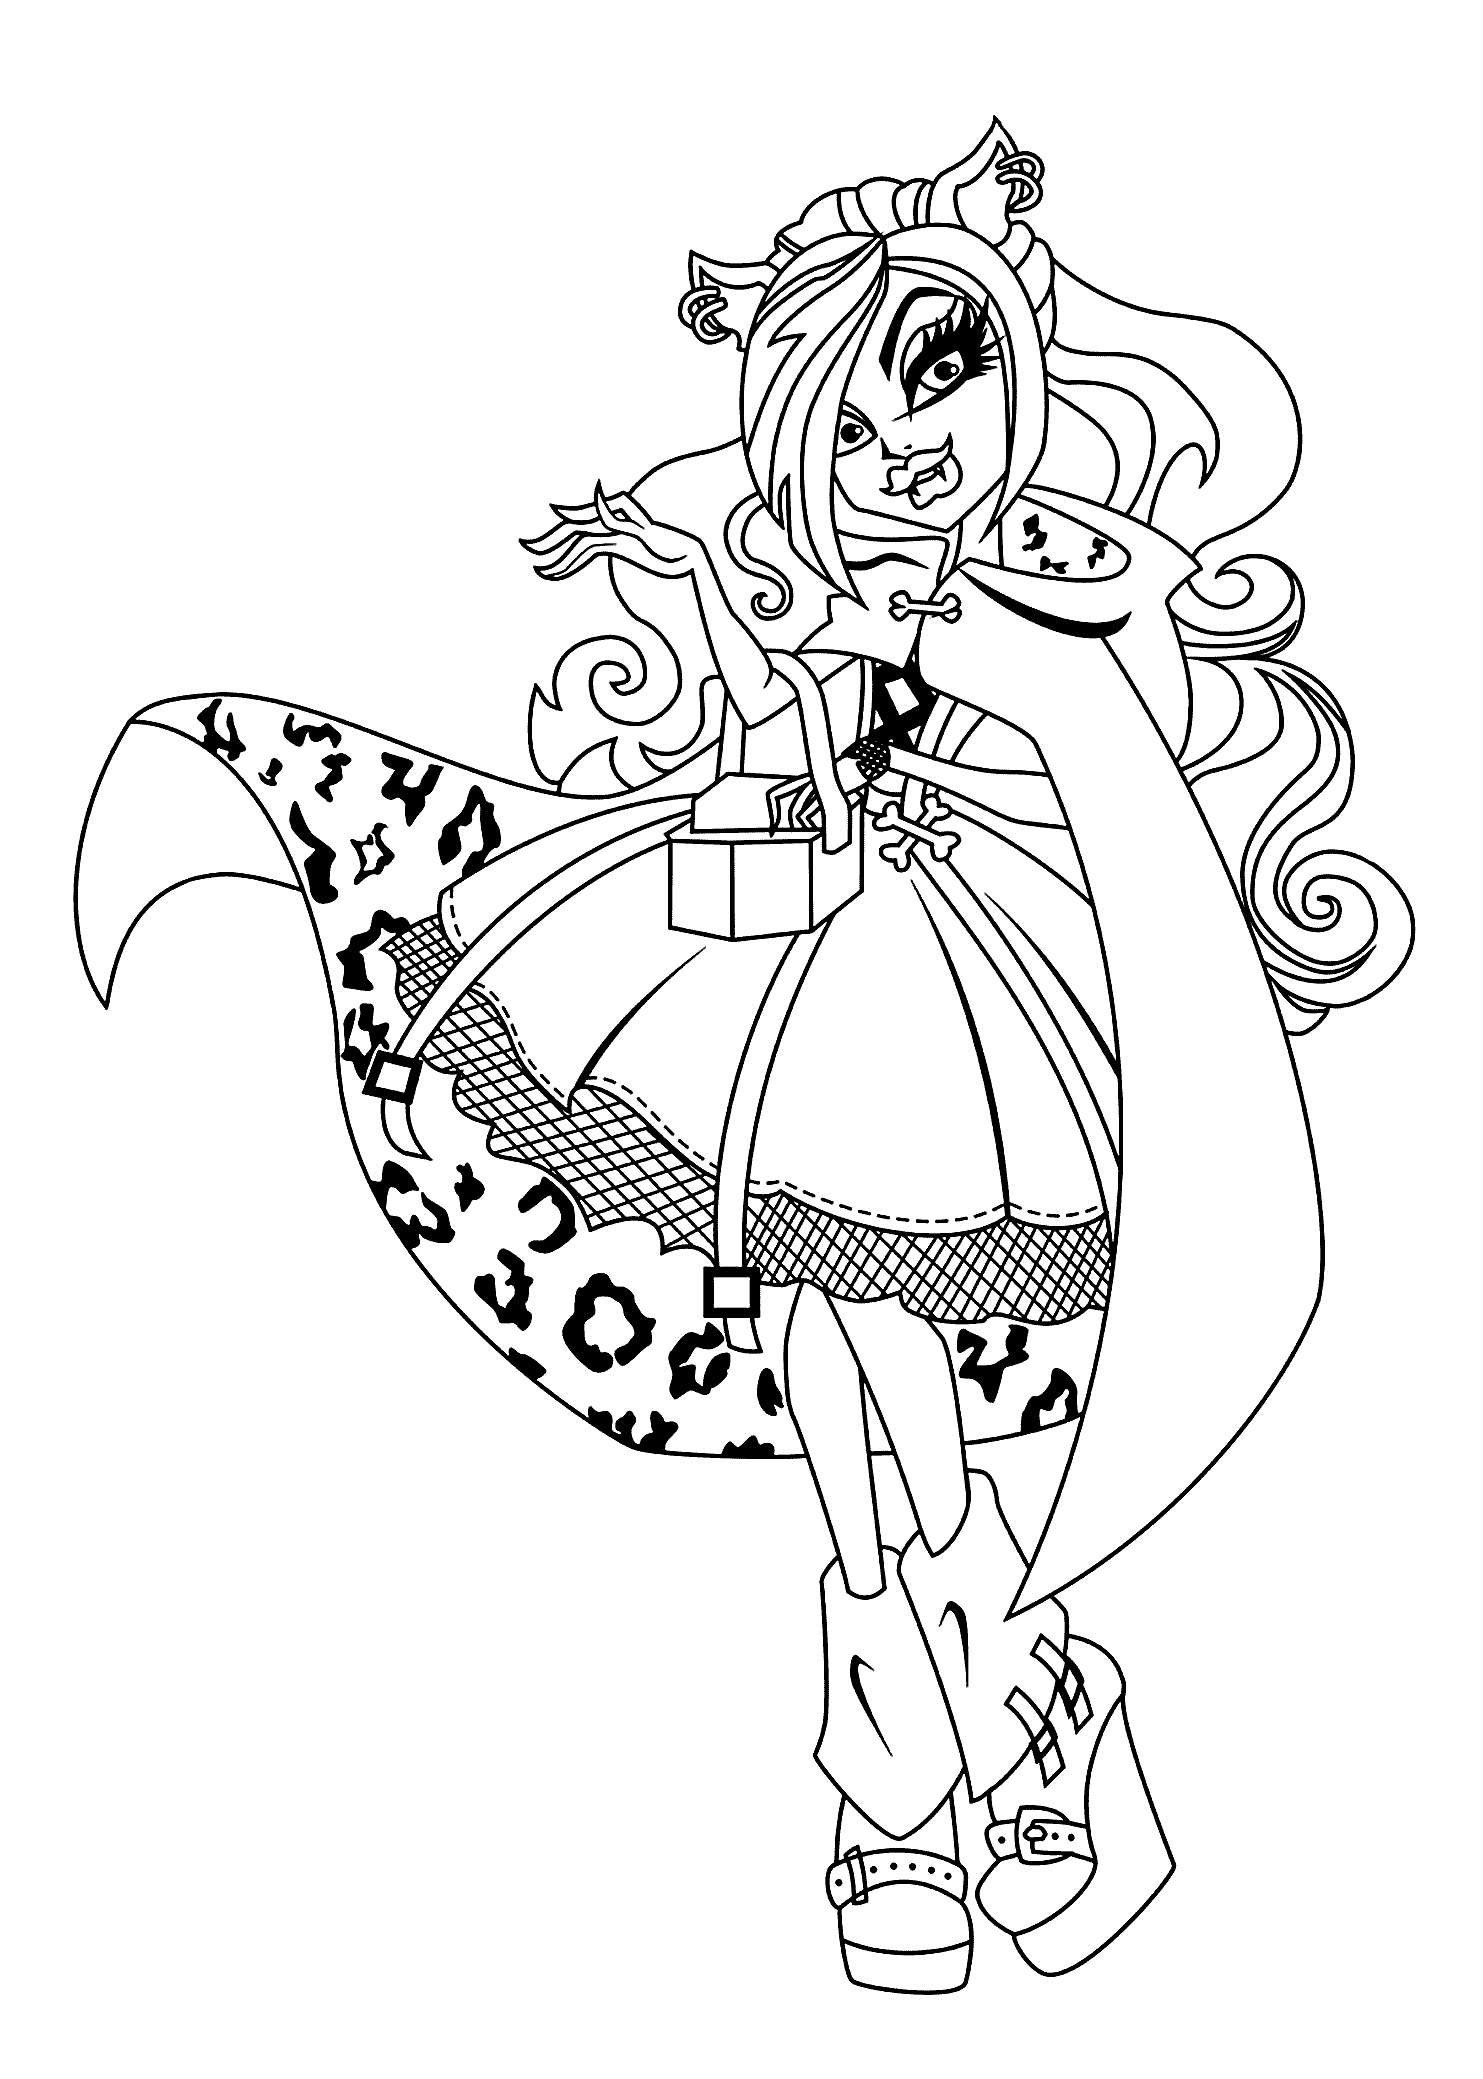 The Best Free Clawdeen Coloring Page Images Download From 50 Free